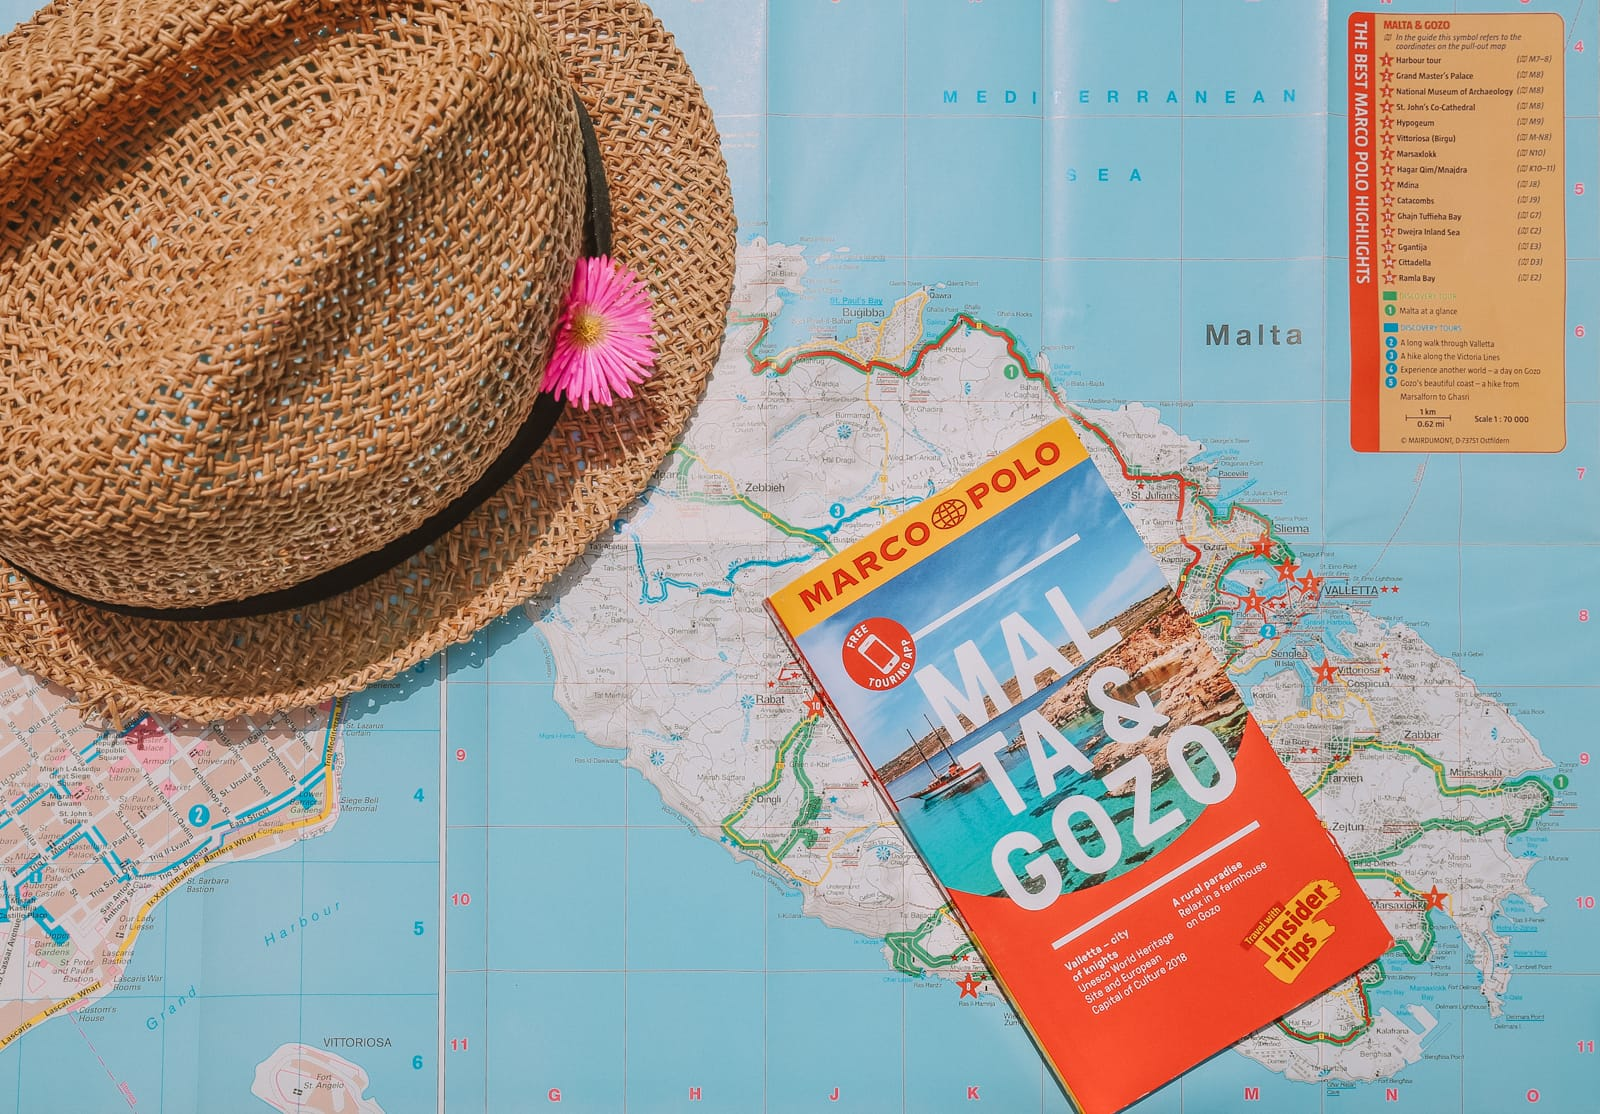 Best Things To Do In Malta & Gozo (66)